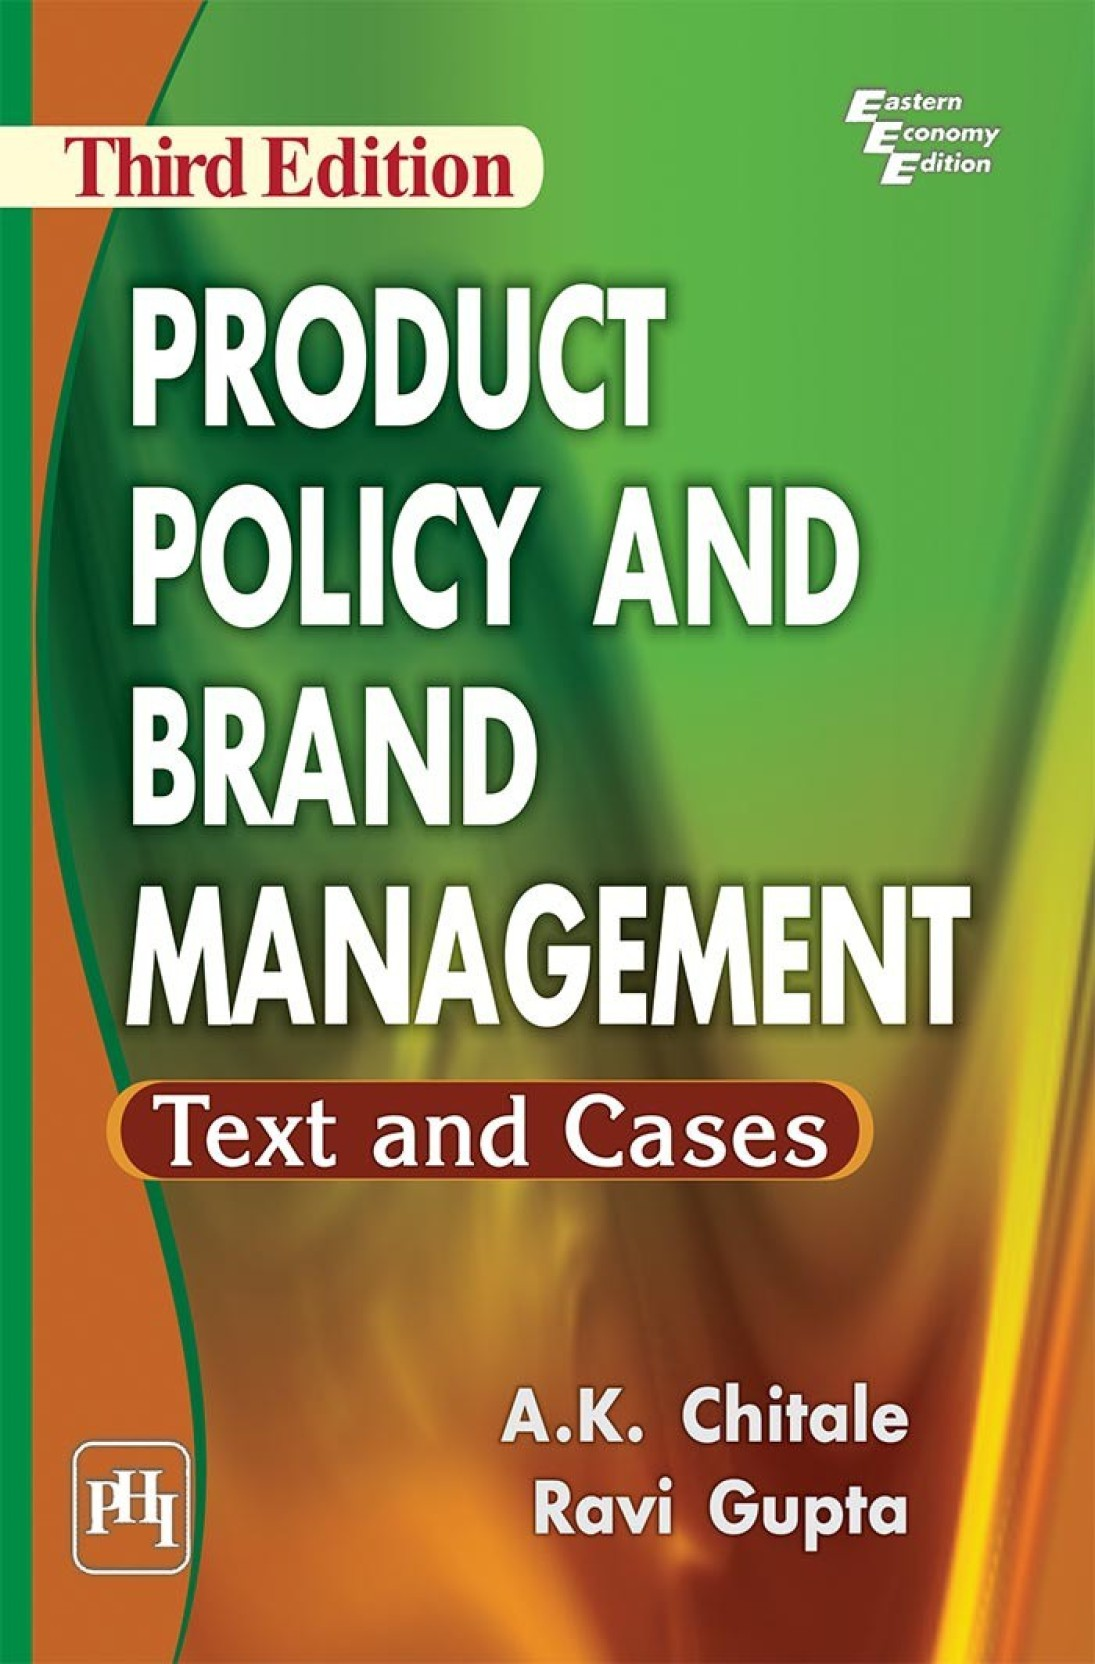 PRODUCT POLICY AND BRAND MANAGEMENT Text and Cases. ADD TO CART